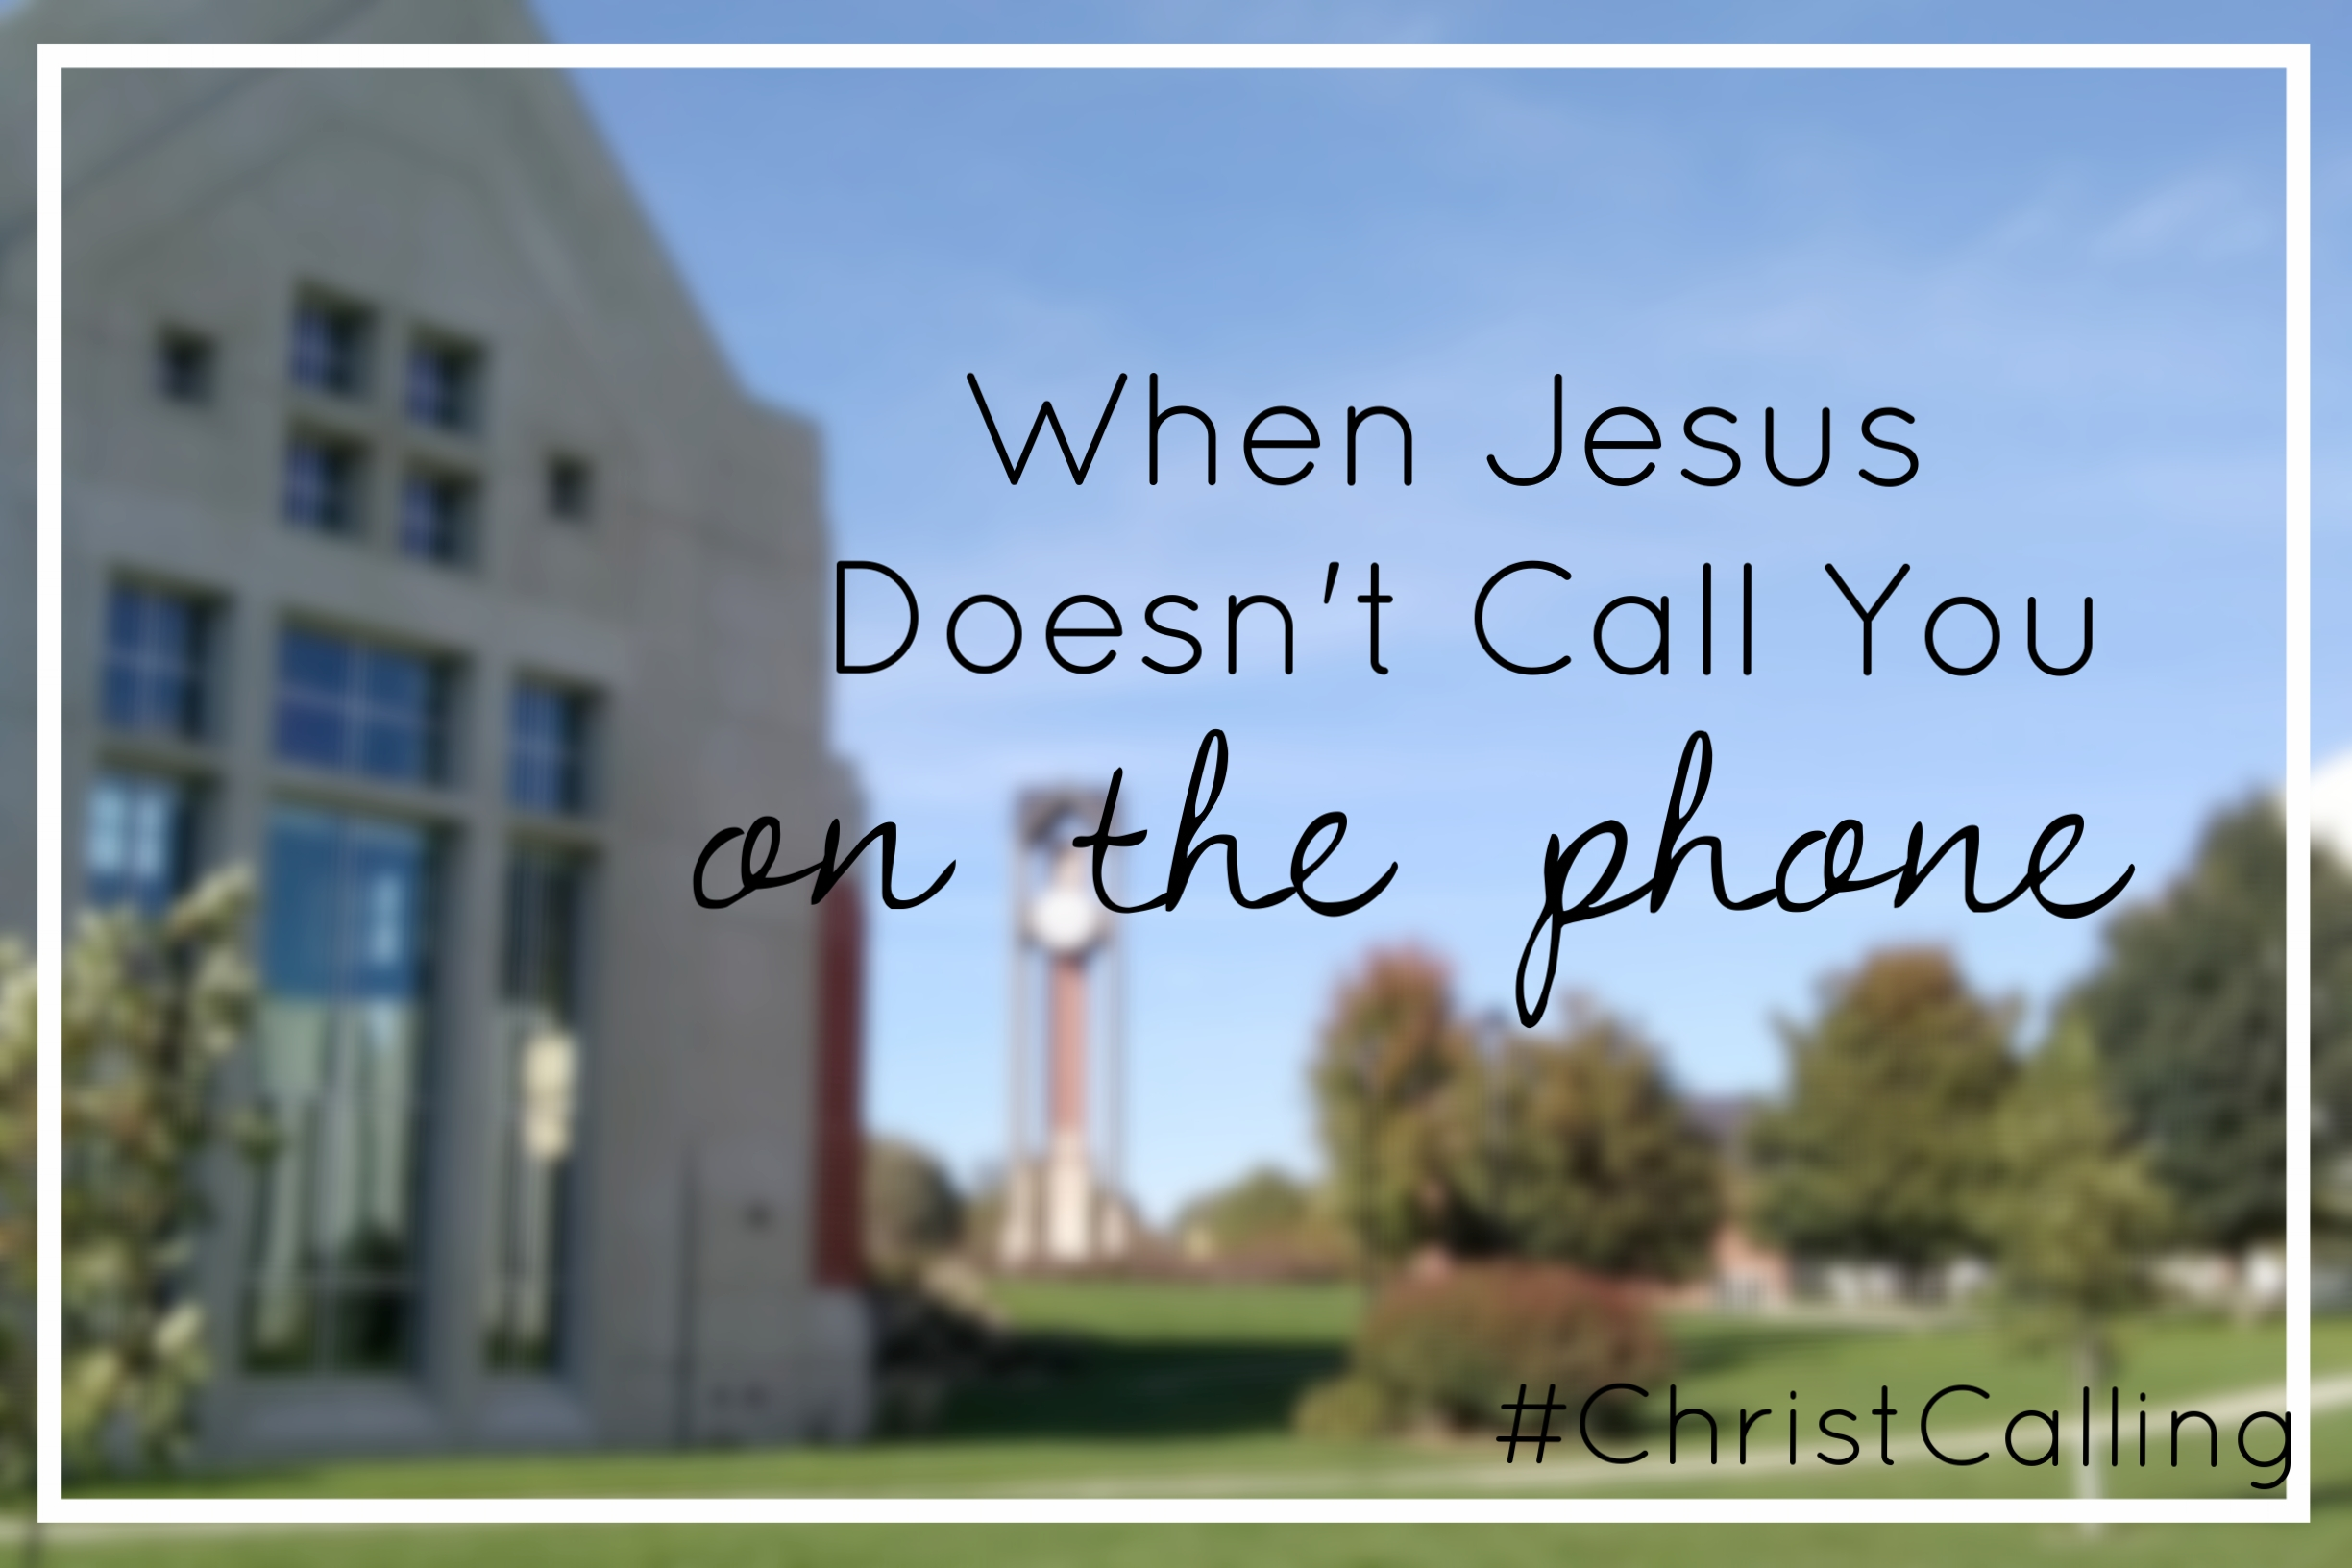 {This week's series was born out of our recent visit to Dordt College. I pray it will be an encouragement to anyone in the season of Big Life Decisioning. #ChristCalling}